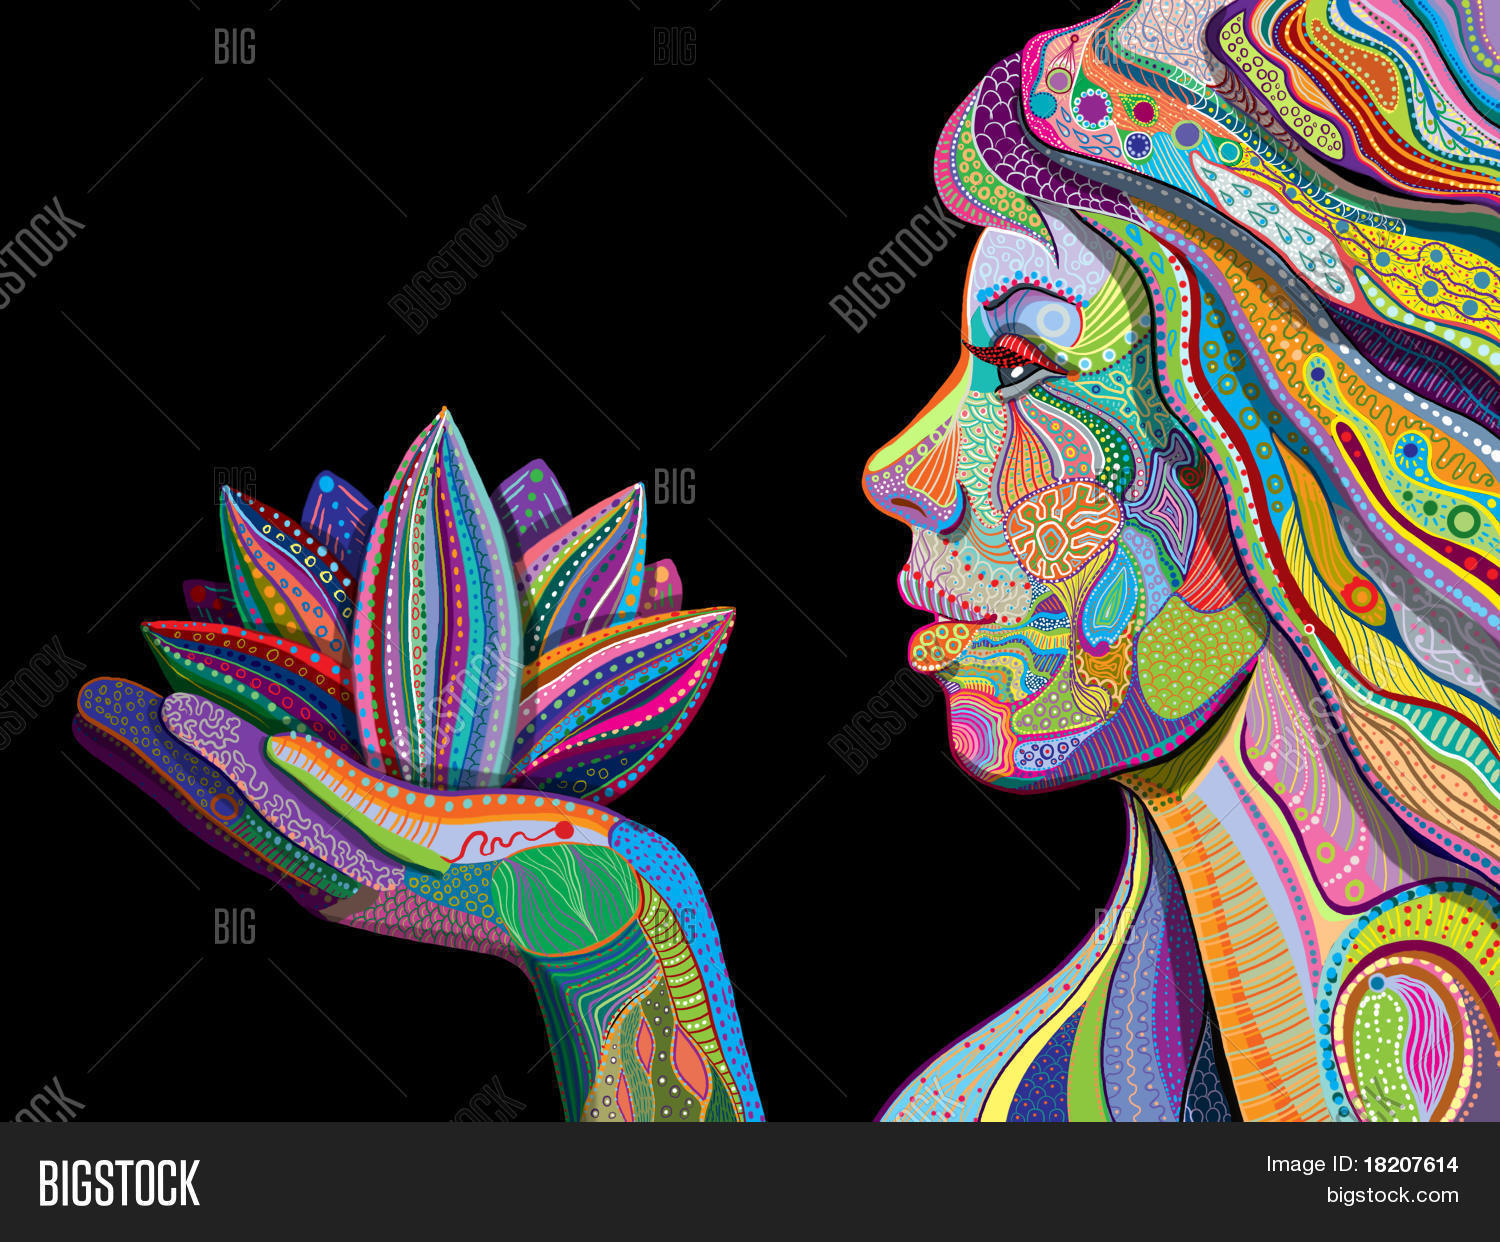 hight resolution of woman face with multicolored indian pattern holding lotus flower side view digital painting jpg 1500x1242 black